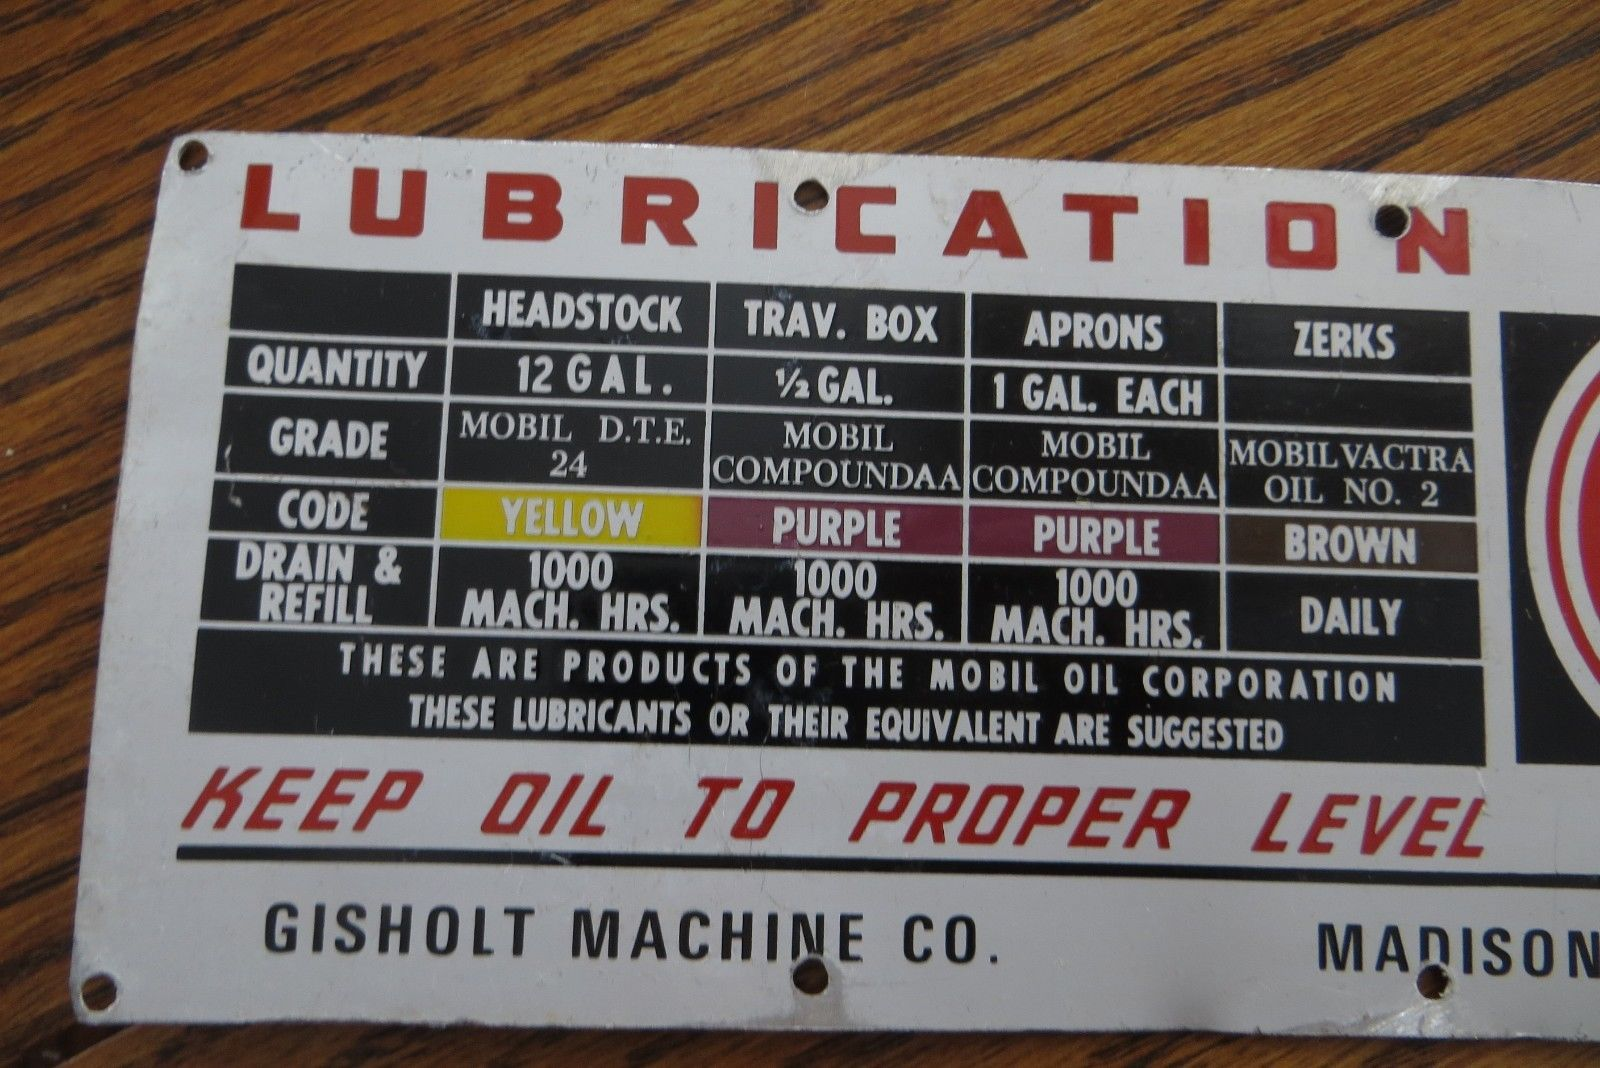 Gisholt Machine Co Madison Wi,Lubrication and similar items